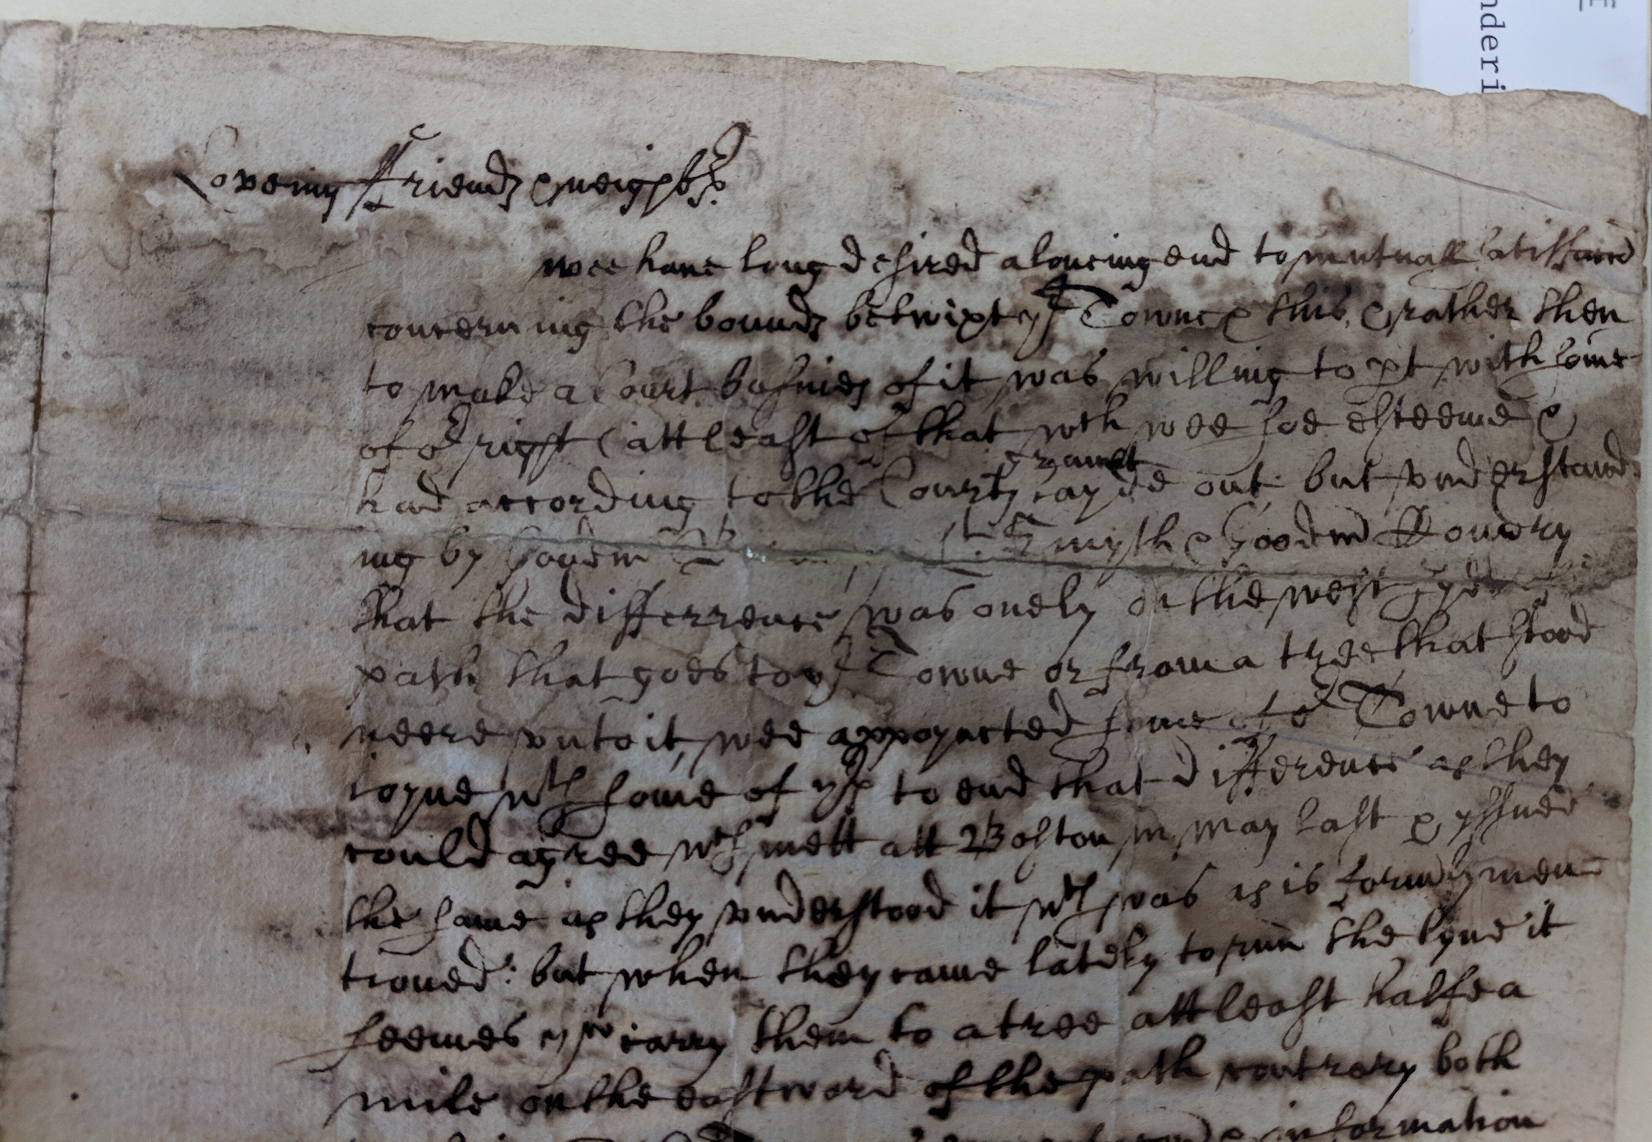 Document of Committee of Andover, 1658. MSS 0.247. Phillips Library, Peabody Essex Museum, Salem, MA.